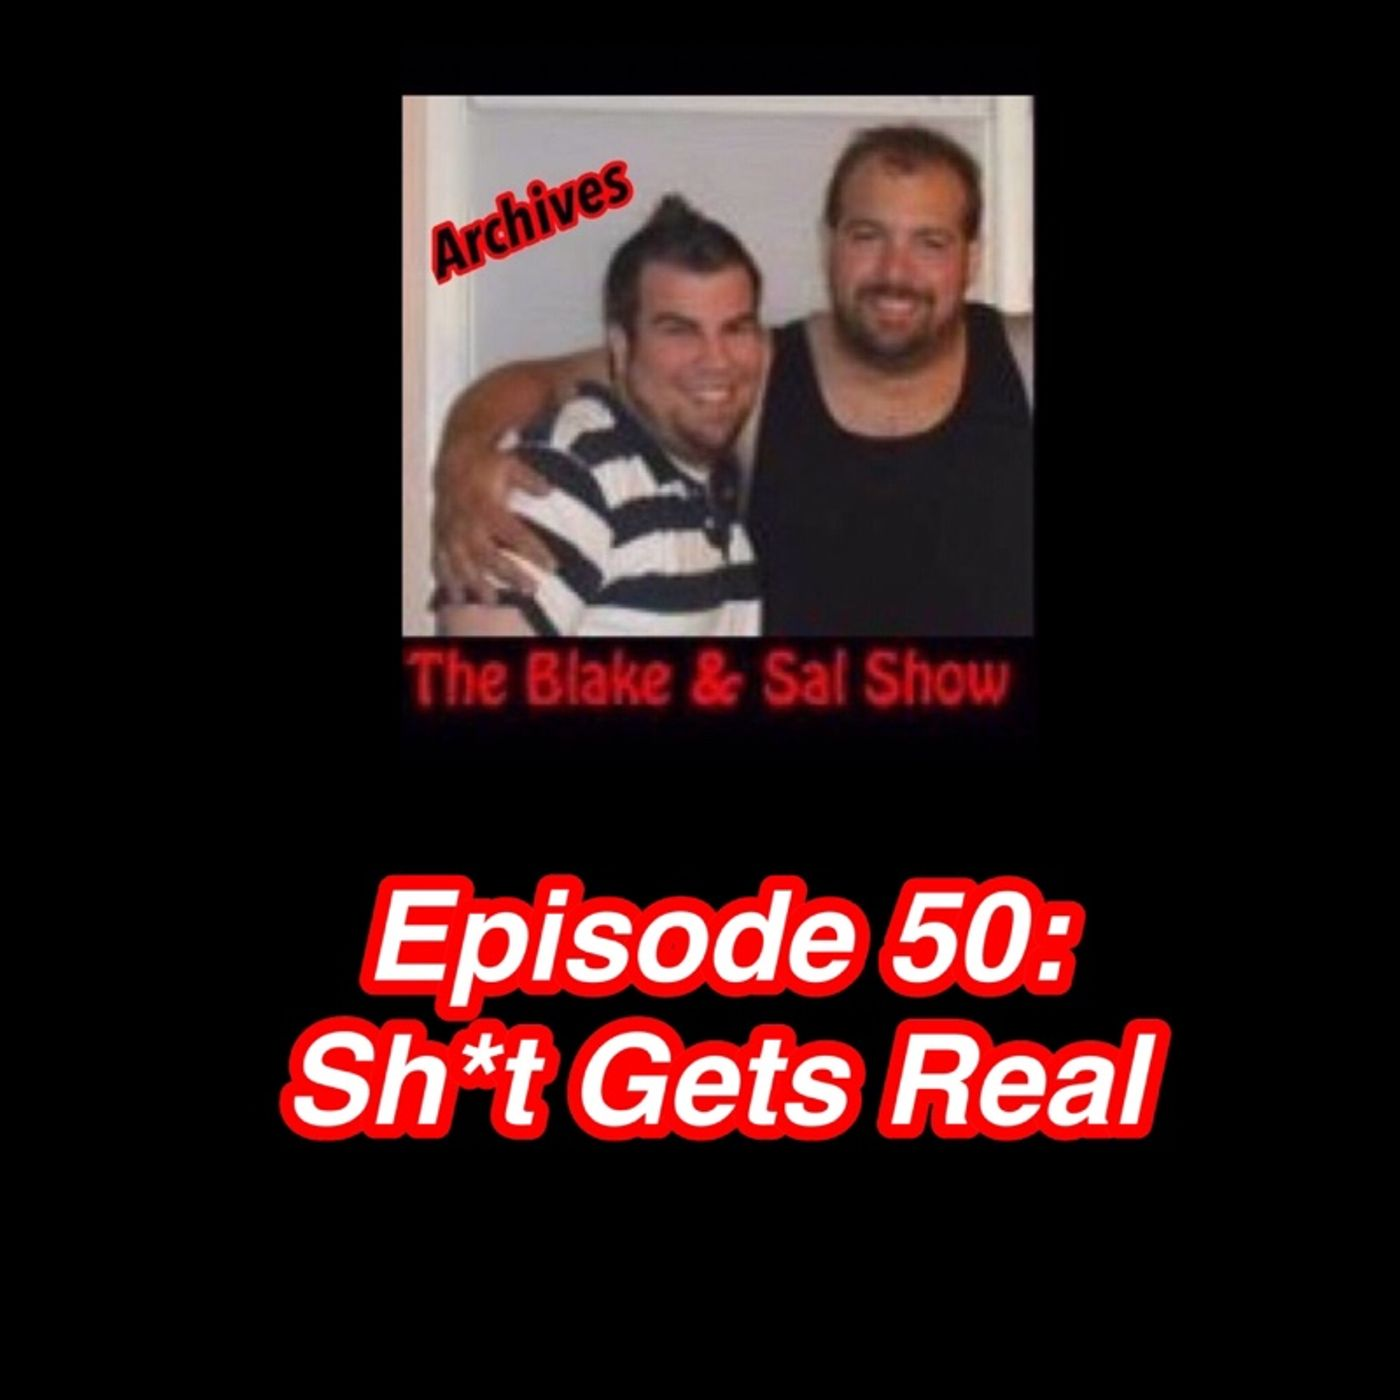 B&S Archives Episode 50: Sh*t Gets Real (Special Guest: Marissa Korbel)